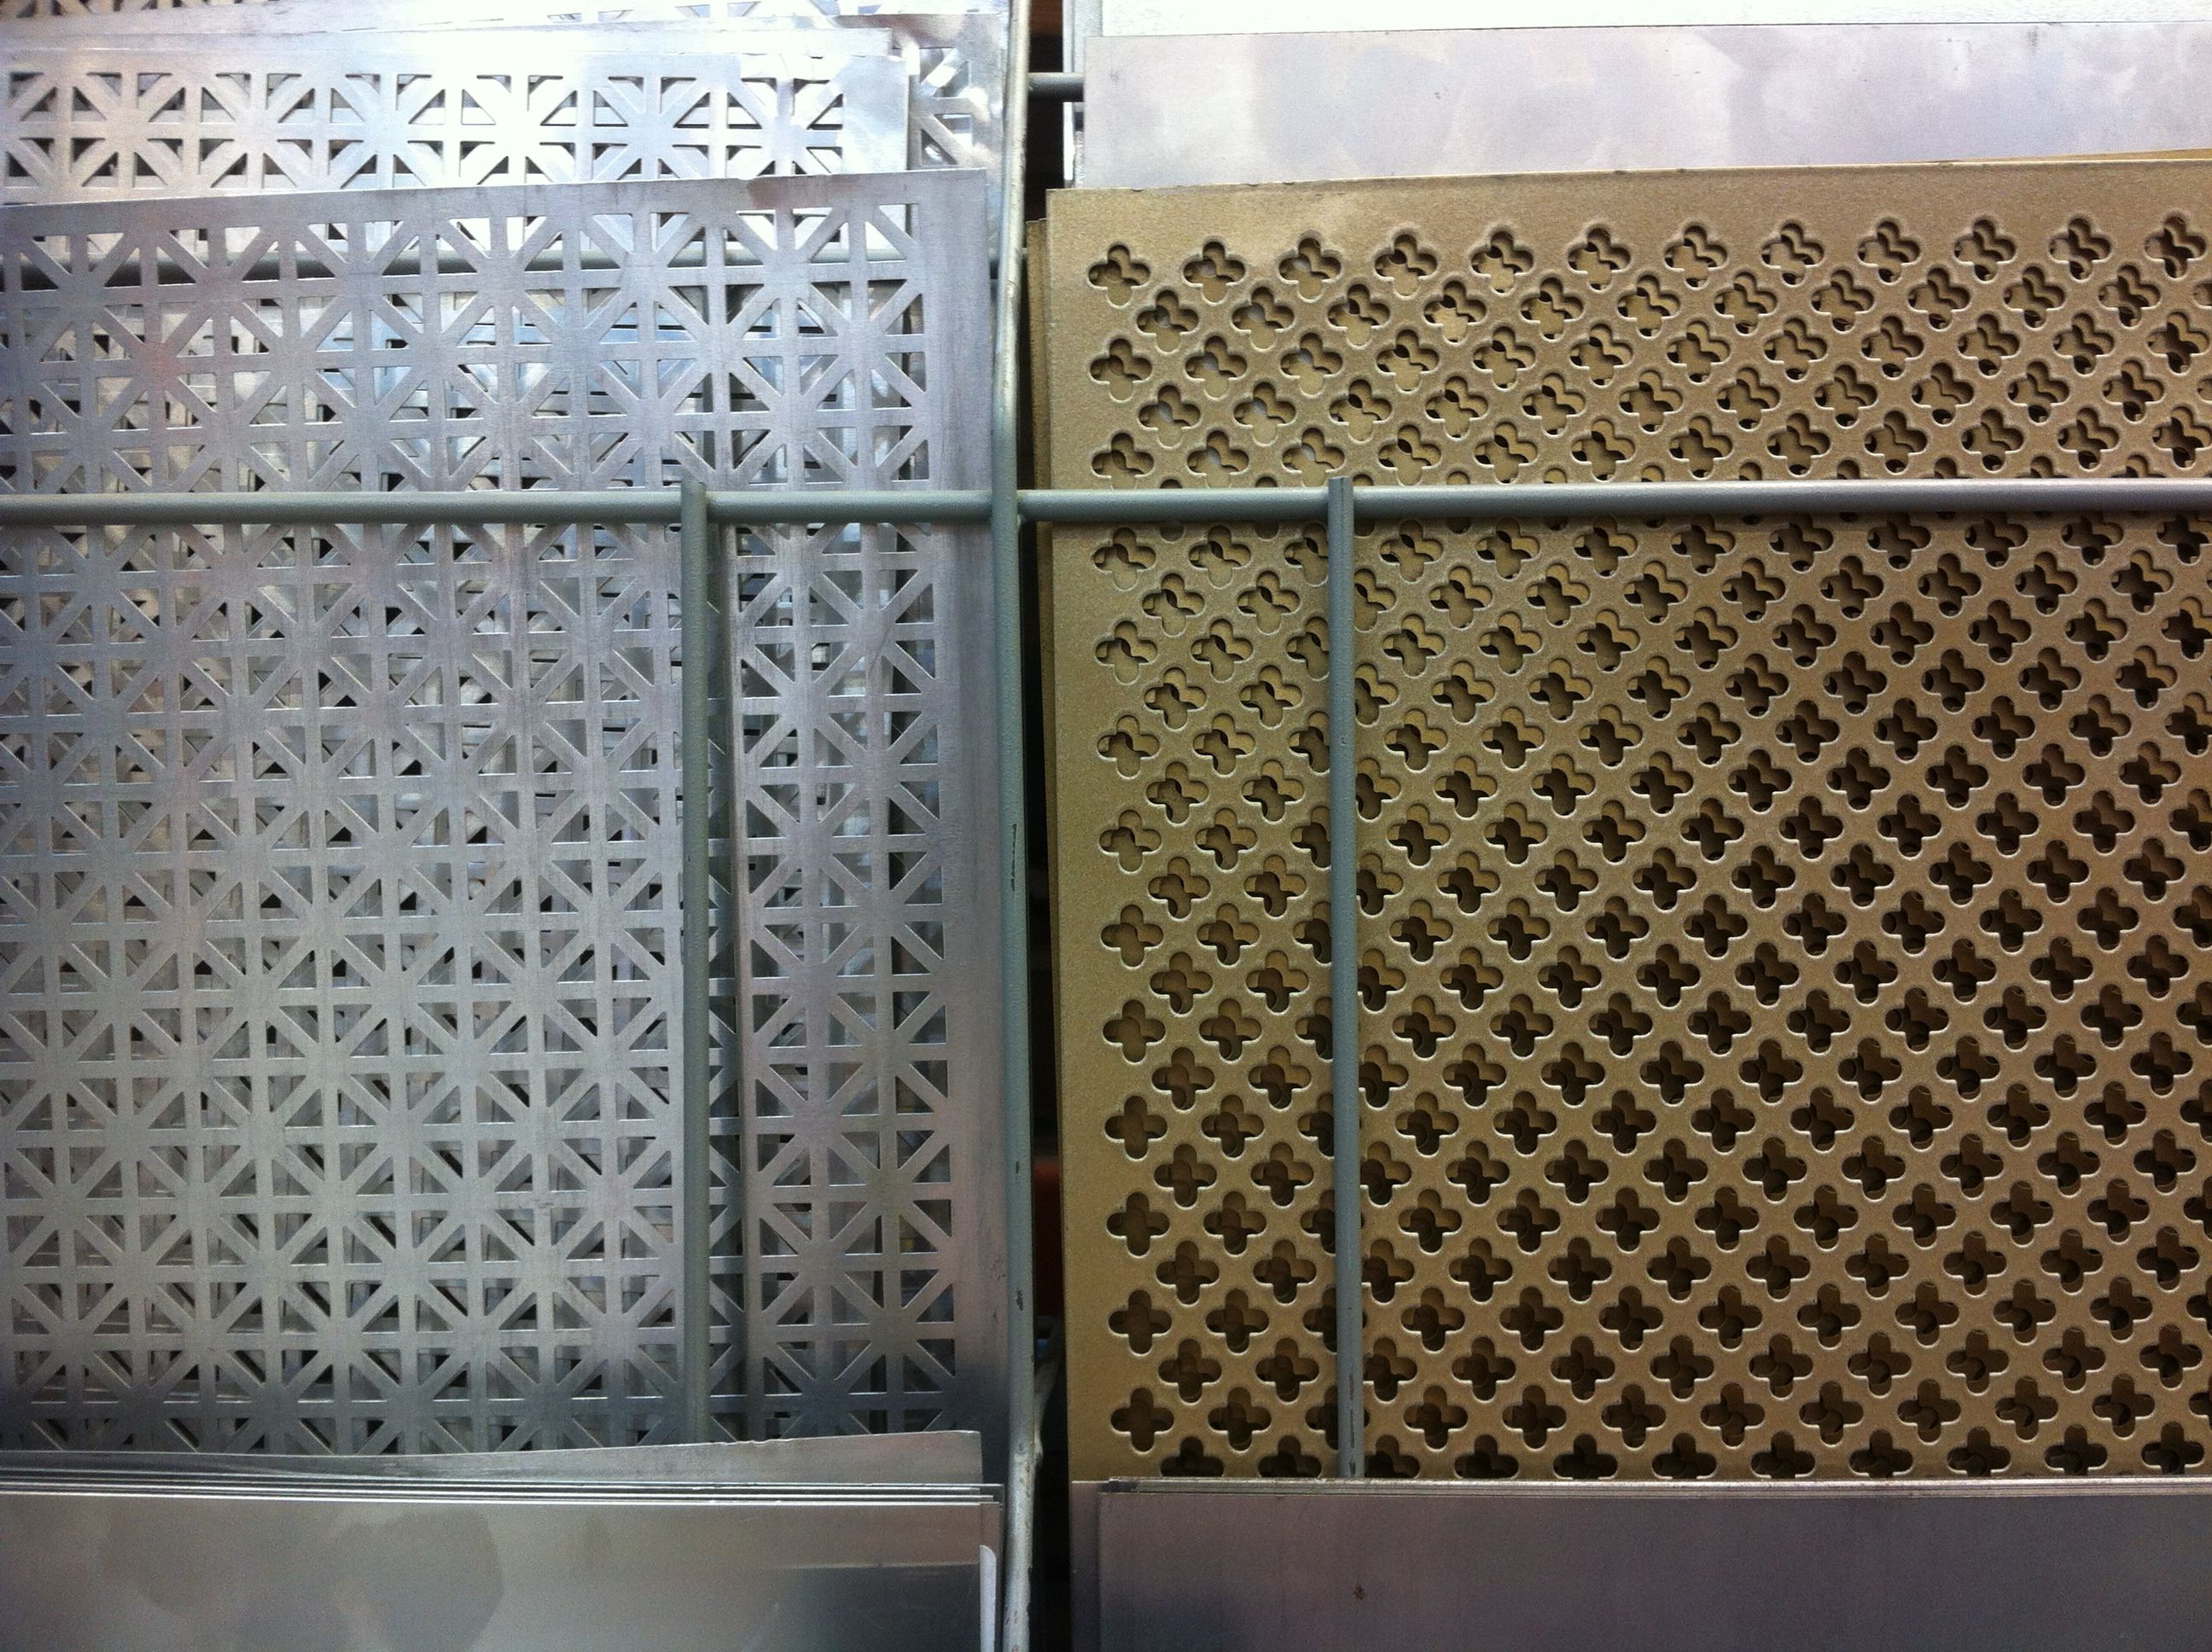 Radiator Screen Covers At Home Depot To Cover Wood Cornice